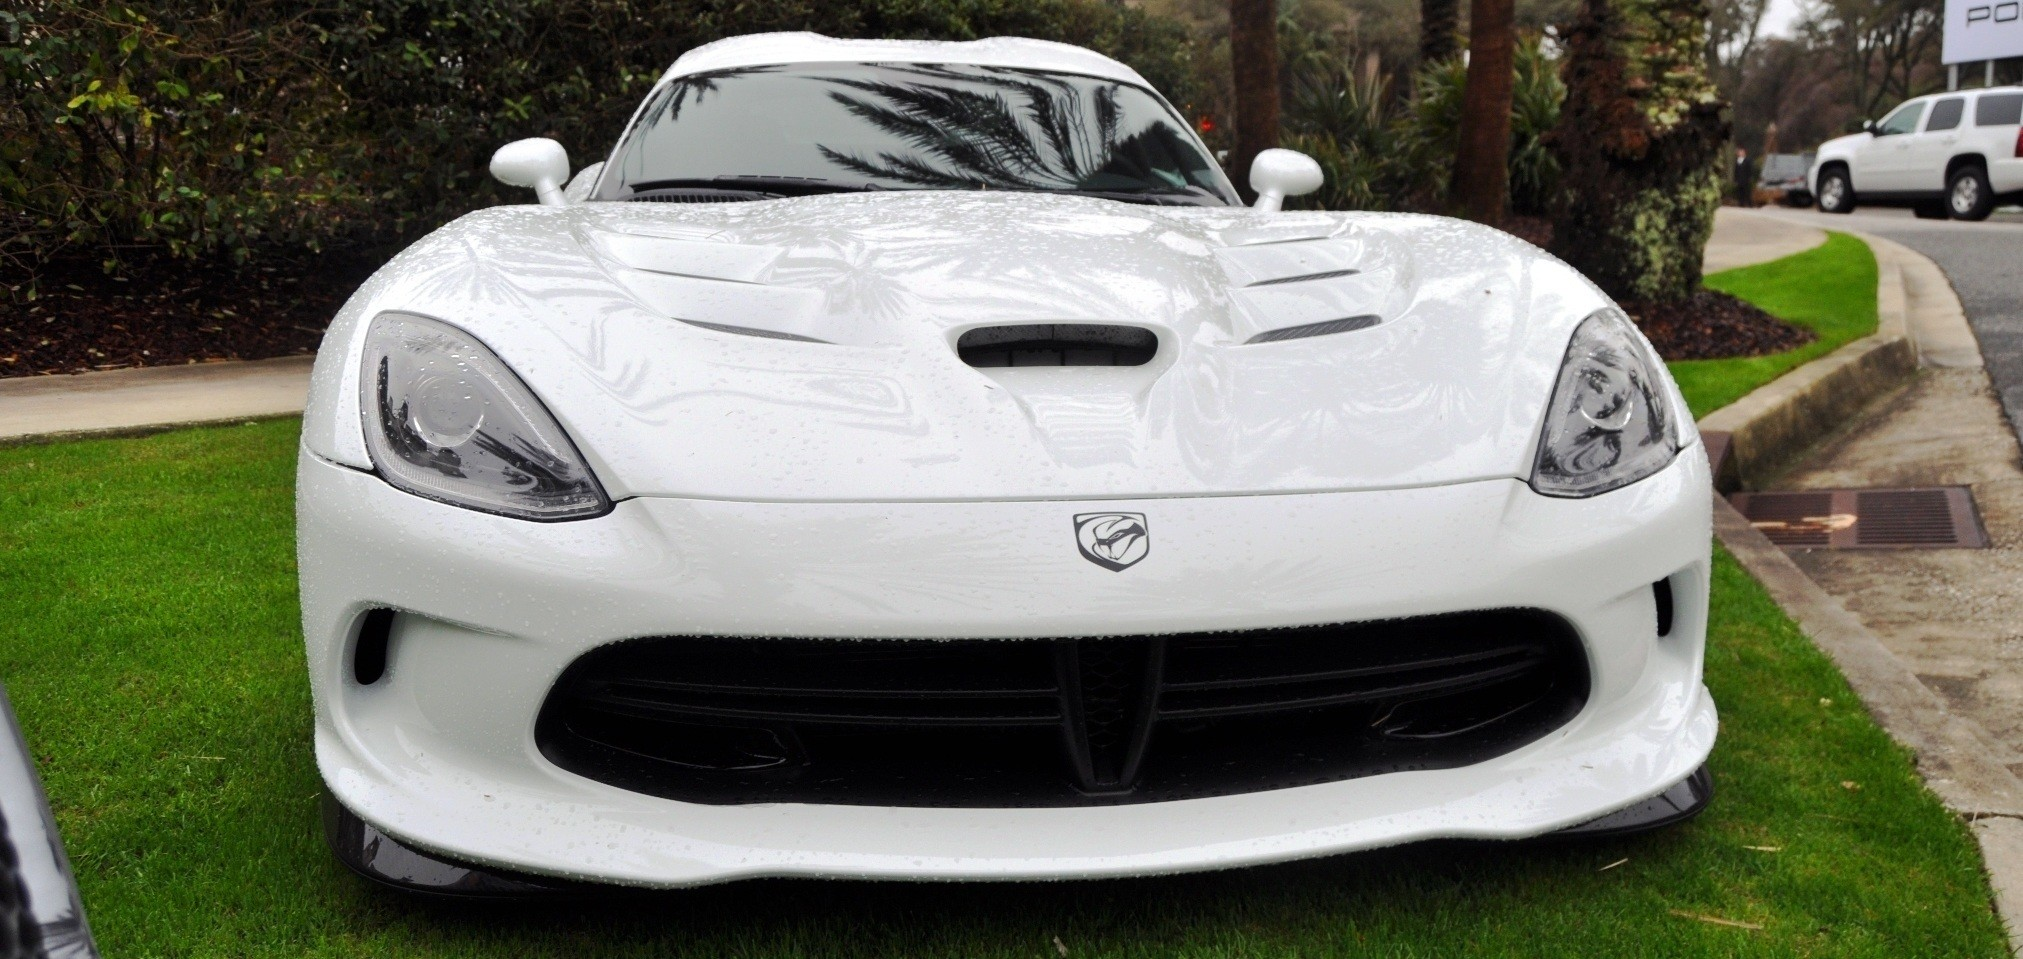 2014 SRT Viper TA in 25 All-New, Real-Life Photos with Carbon Aero Styling Options 21